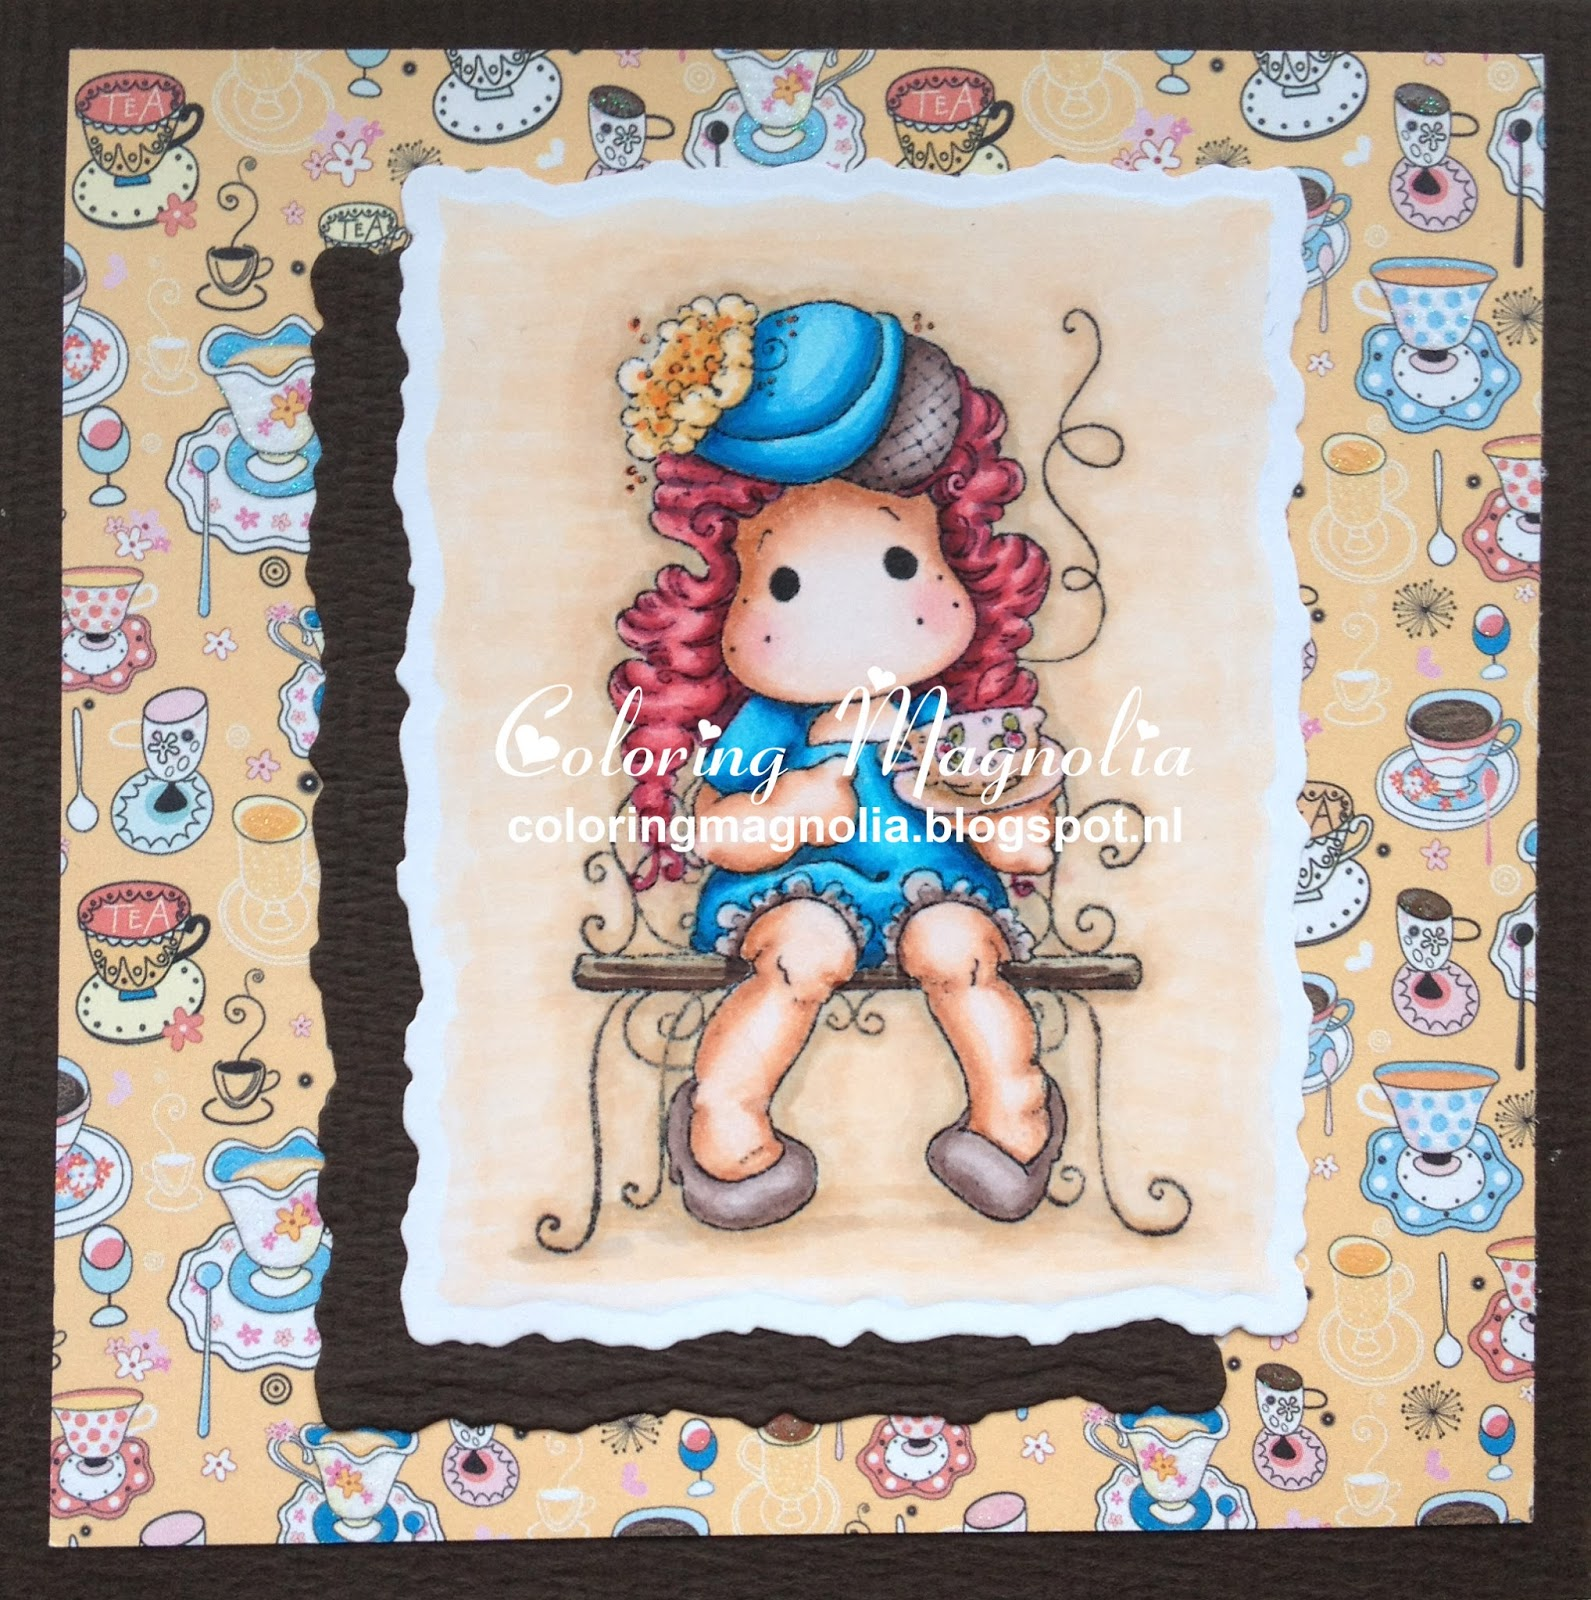 Coloring Magnolia Stamp 2013 Little London Collection - Afternoon Tea Tilda - Afternoon Tea Bench